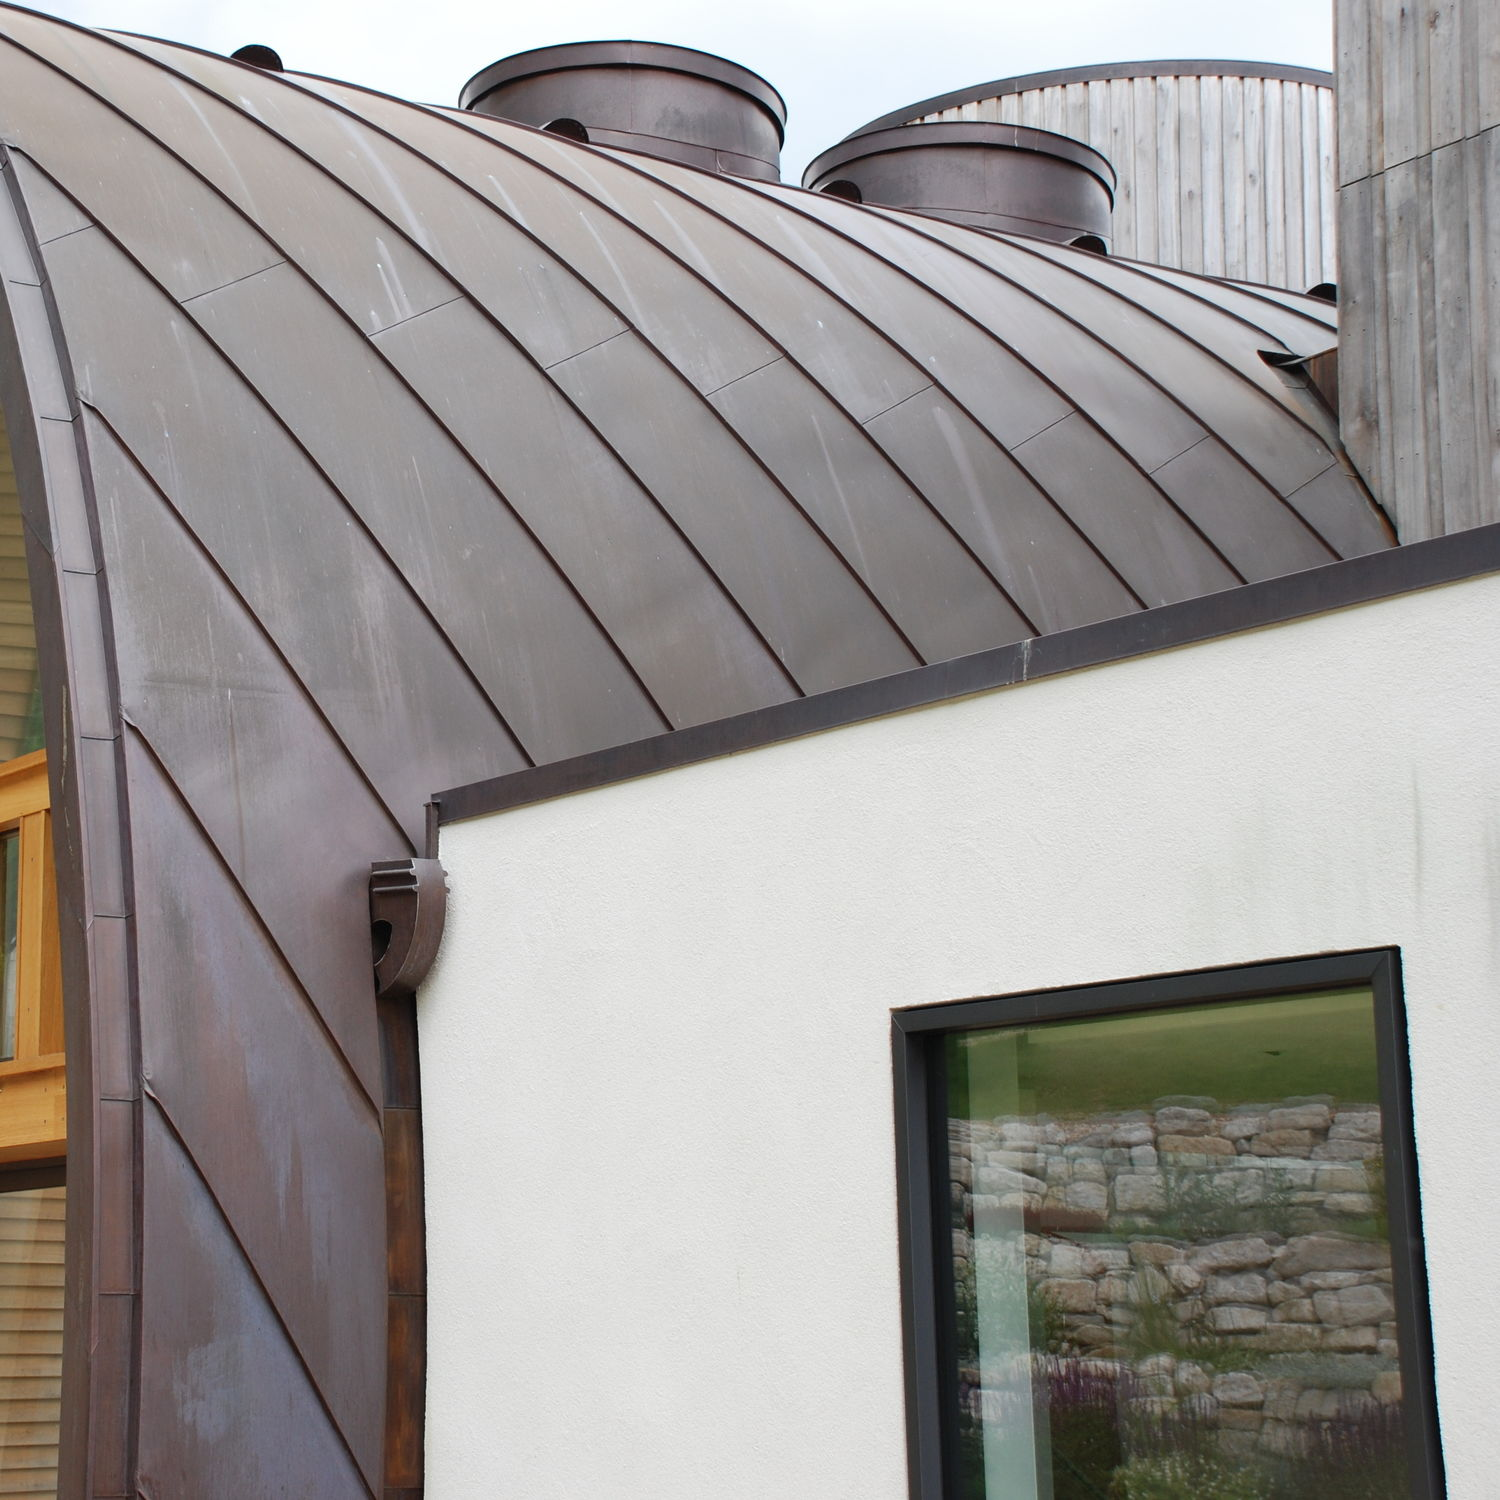 Zinc roofing - DOWNLEY HOUSE - Peters Roofing - standing seam